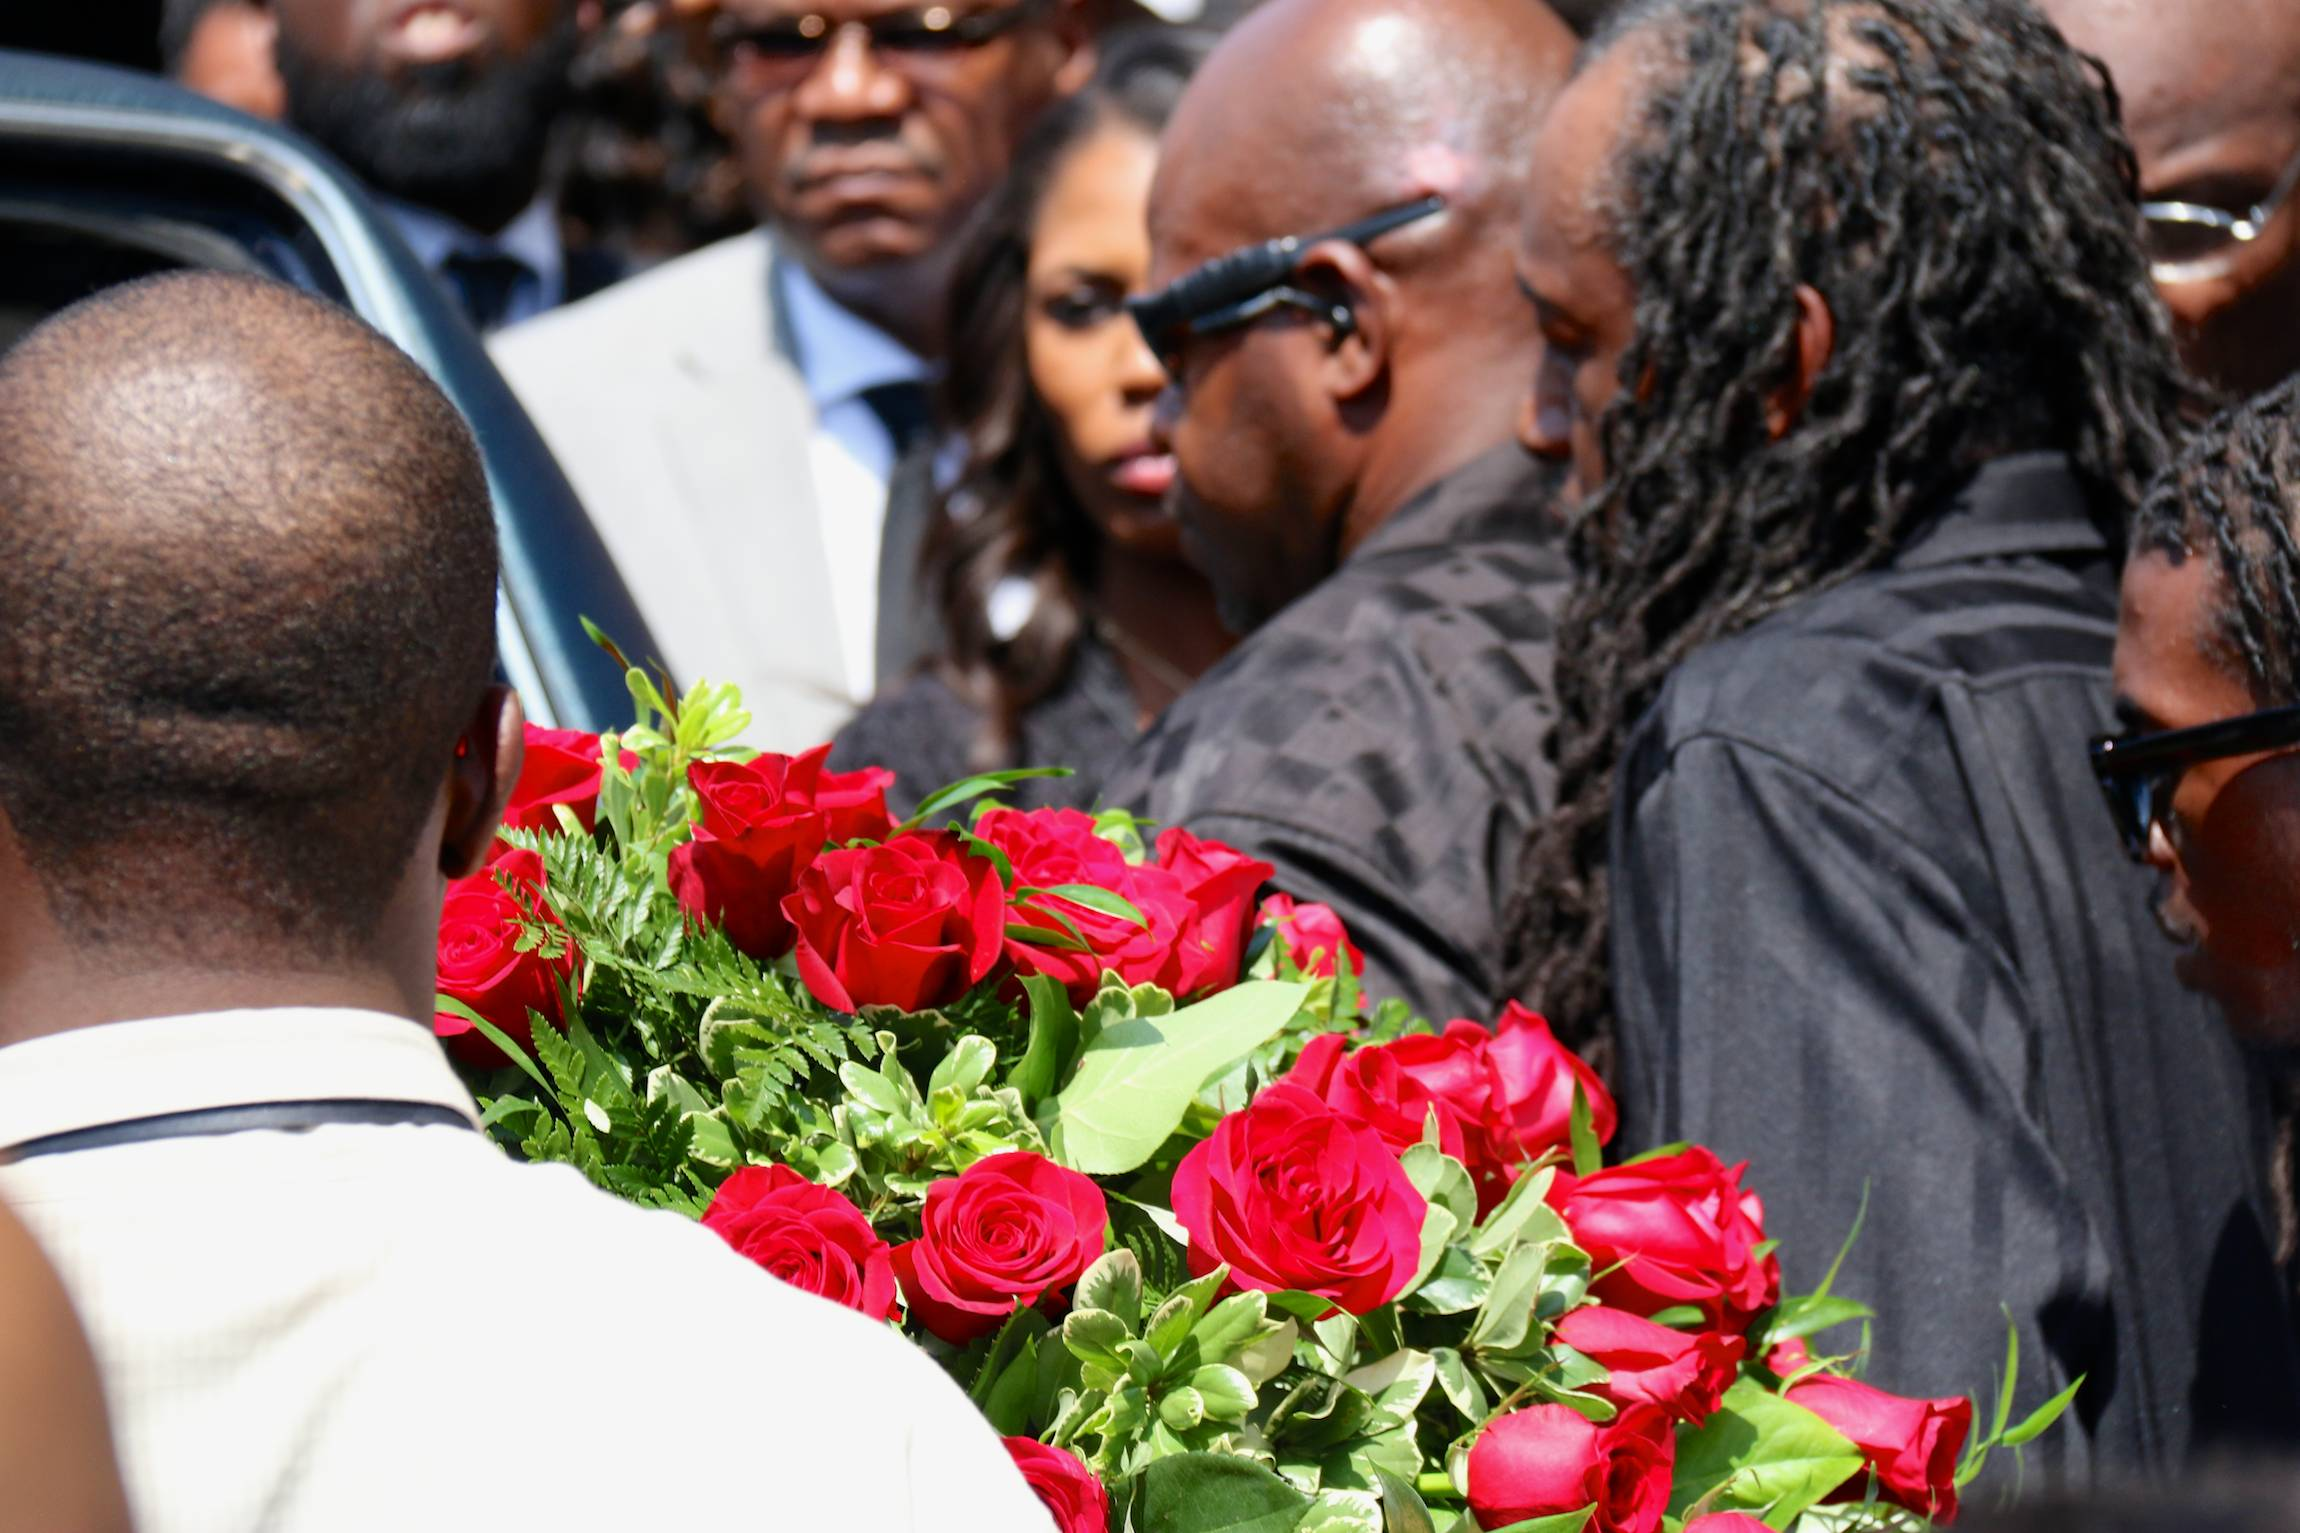 Men carry away the coffin of Michael Brown after the funeral service for the black teenager, Monday, August 25, 2014, in St. Louis. The service, held in the Friendly Temple Missionary Baptist Church, attracted thousands, including civil rights figures Al Sharpton and Jesse Jackson. (Yann Schreiber, File)